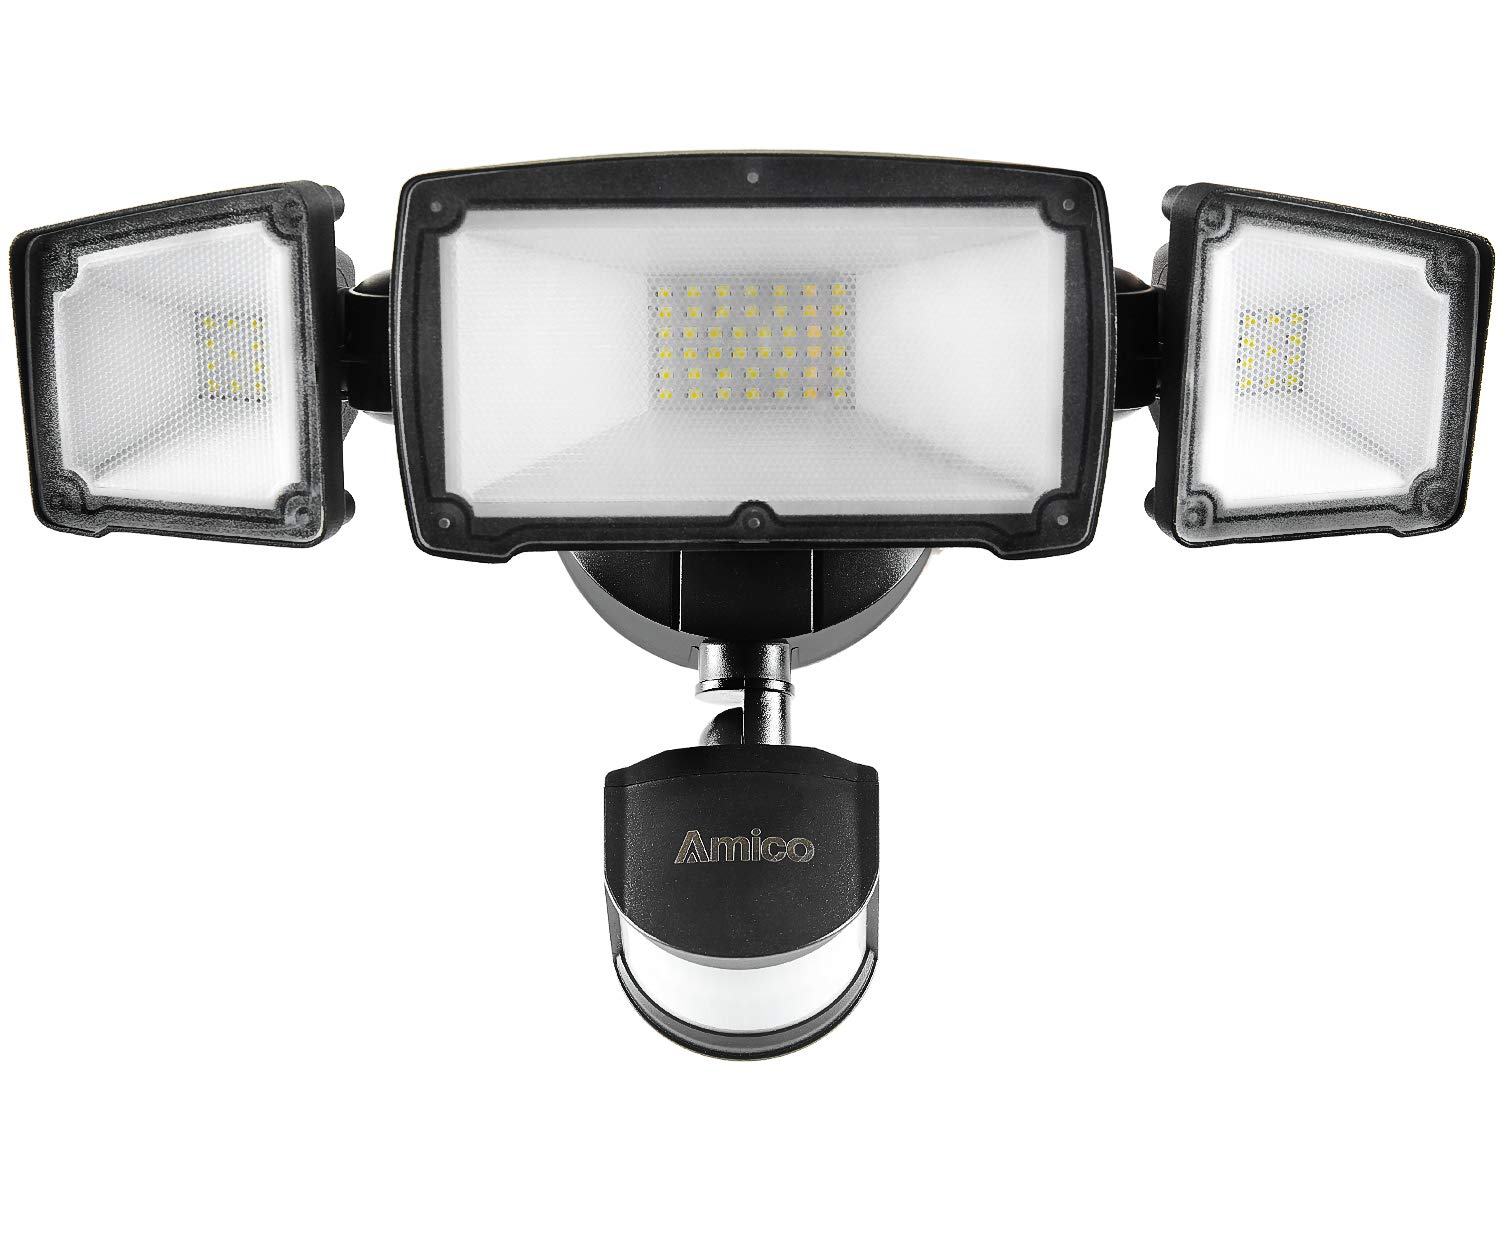 Amico 39W 3 Head LED Security Lights Motion Outdoor Motion Sensor Light Outdoor 3500 Lumens 6000K Waterproof IP65 ETL Motion Activated Flood Light Black